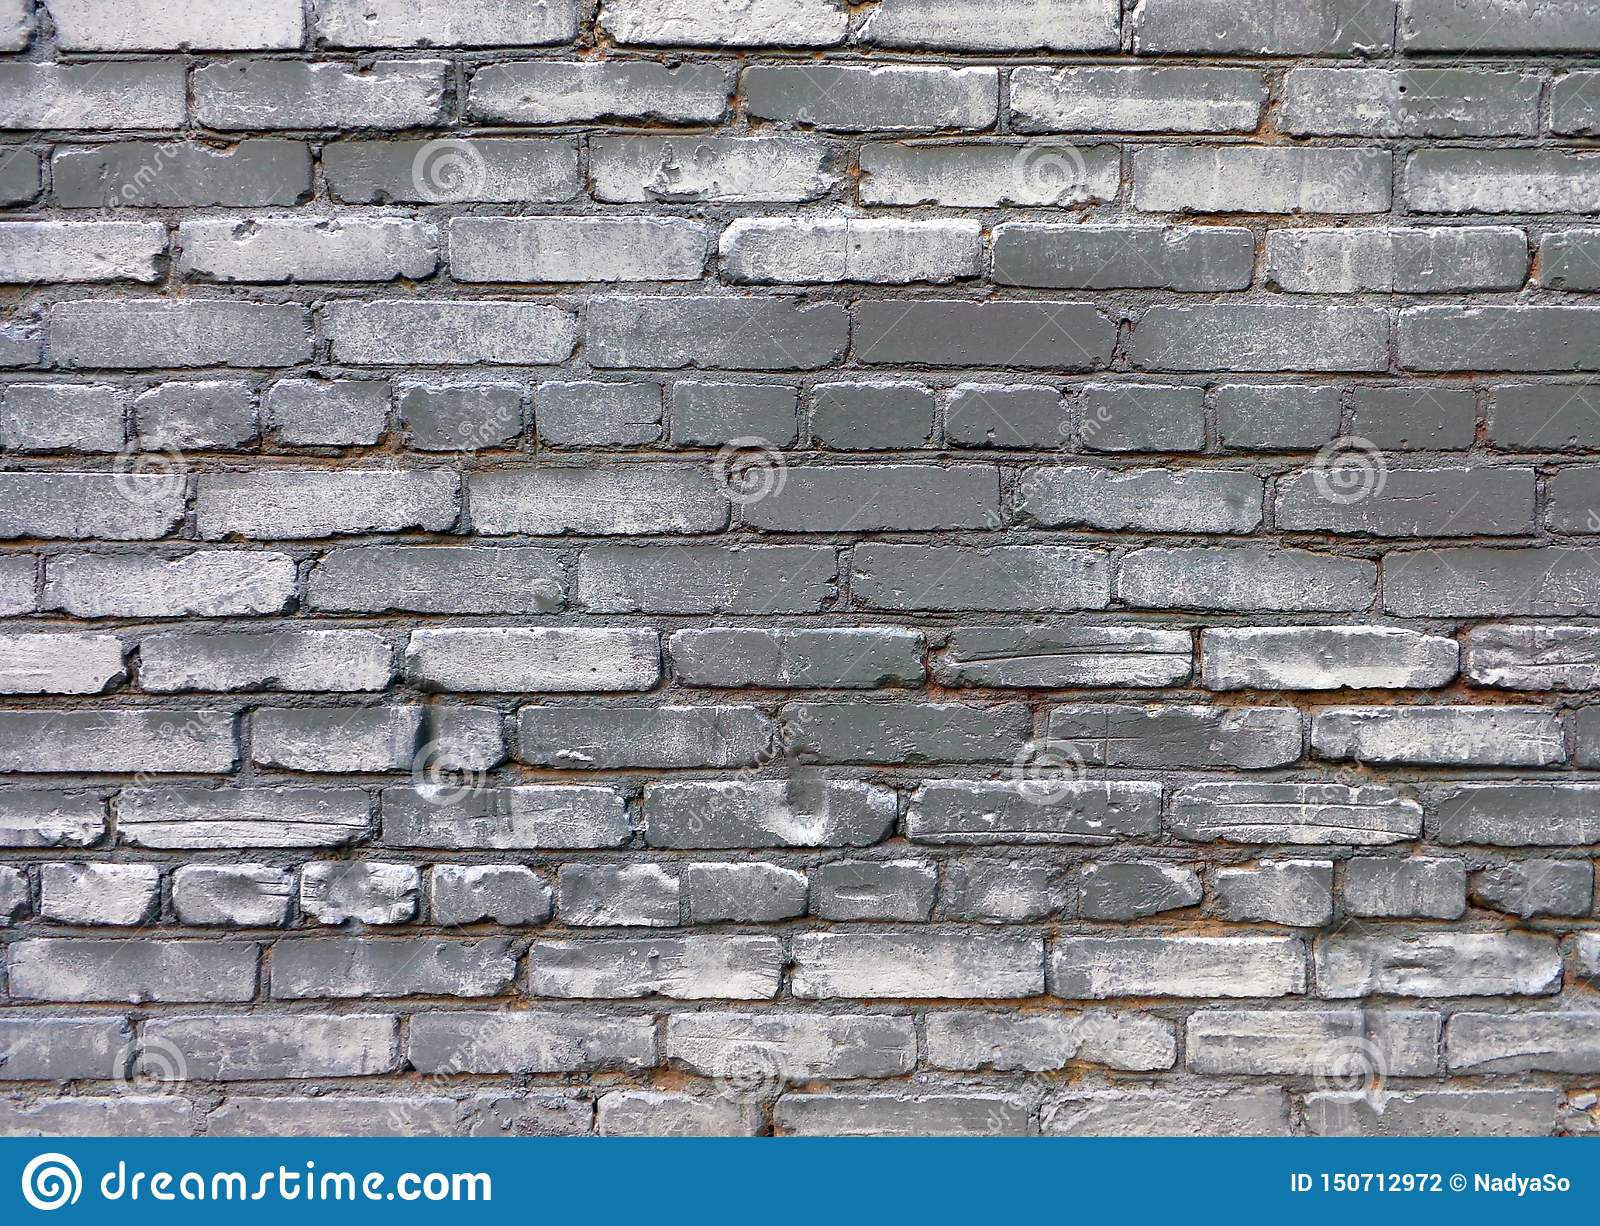 Uurban grunge background of old brick gray painted wall